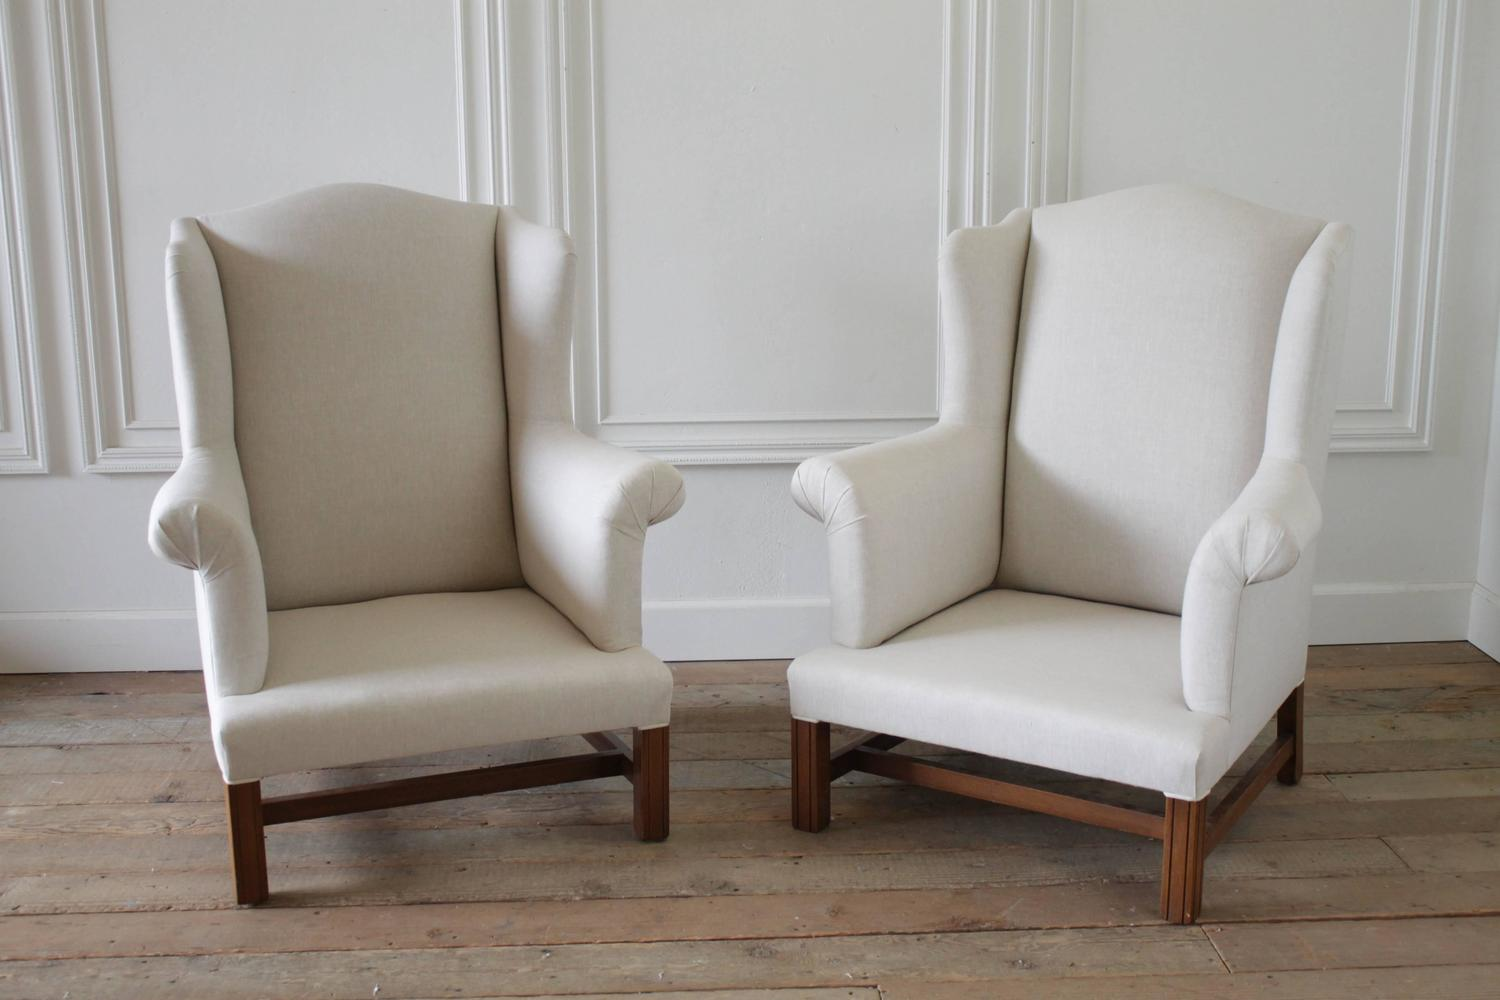 Sumptuous chair-and-a-half in a gorgeous oatmeal colored ...